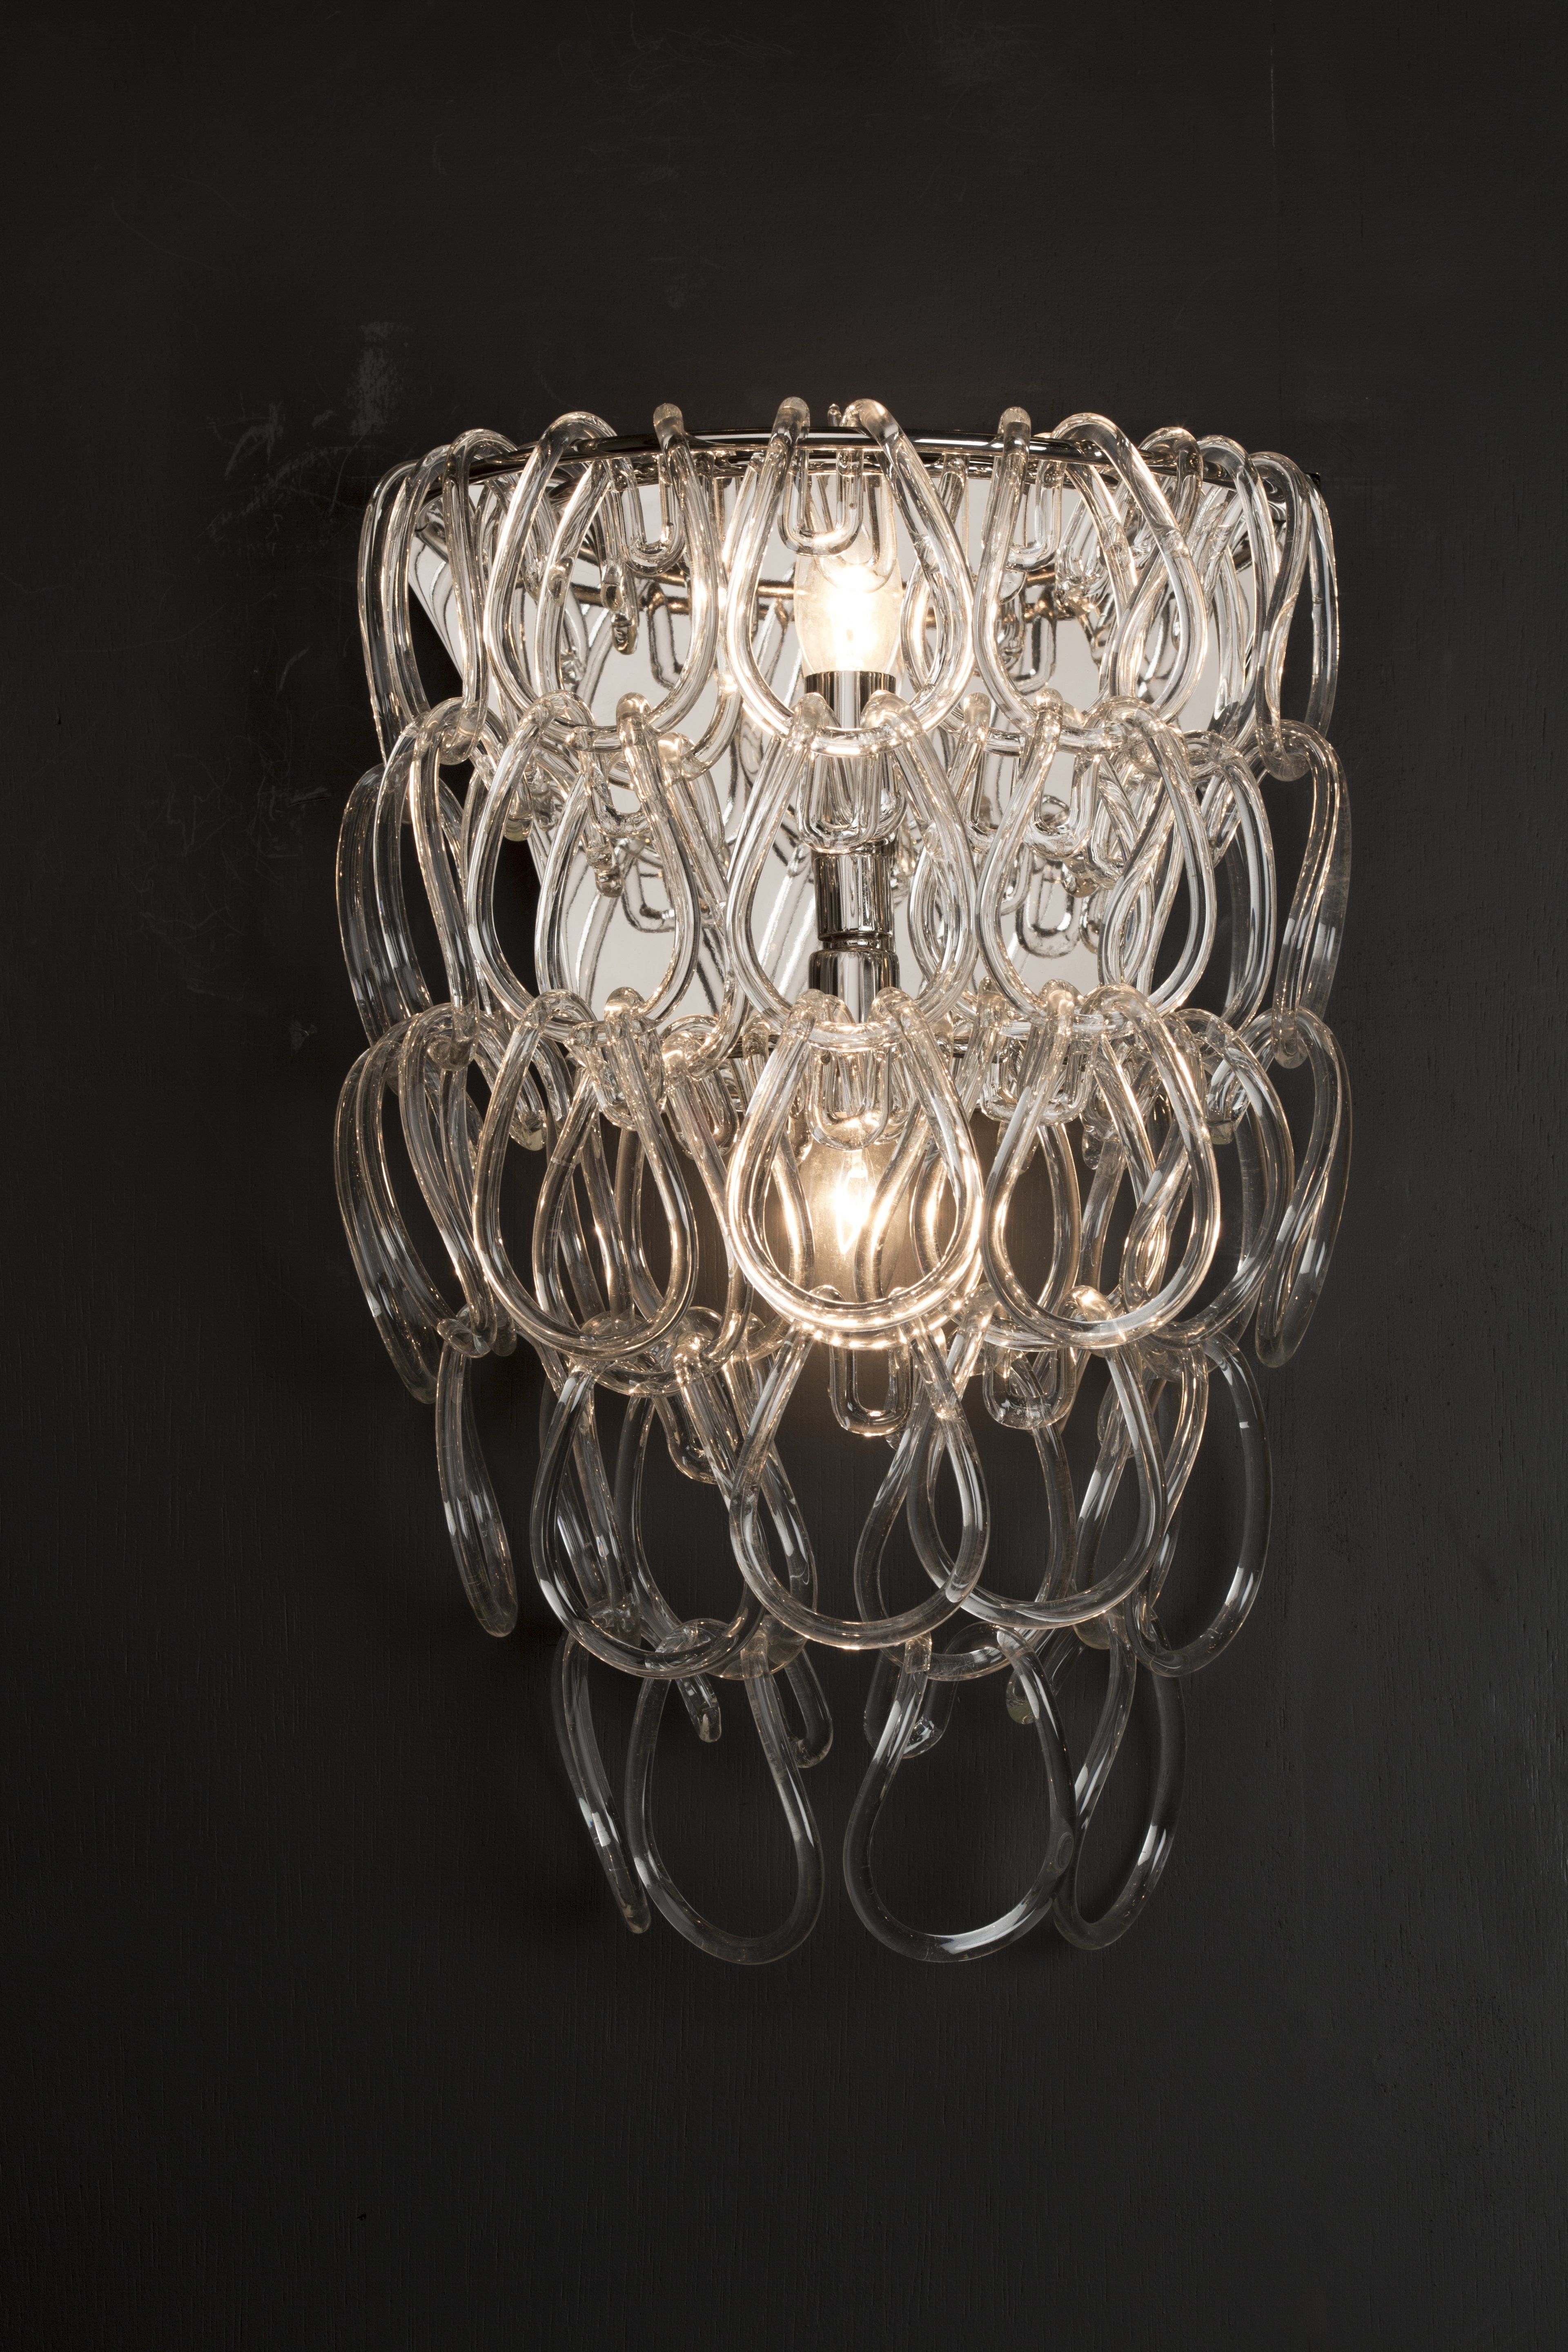 Pin On Luxe Light And Home Signature Collection Lighting Chandeliers Wall Sconce Interior Design